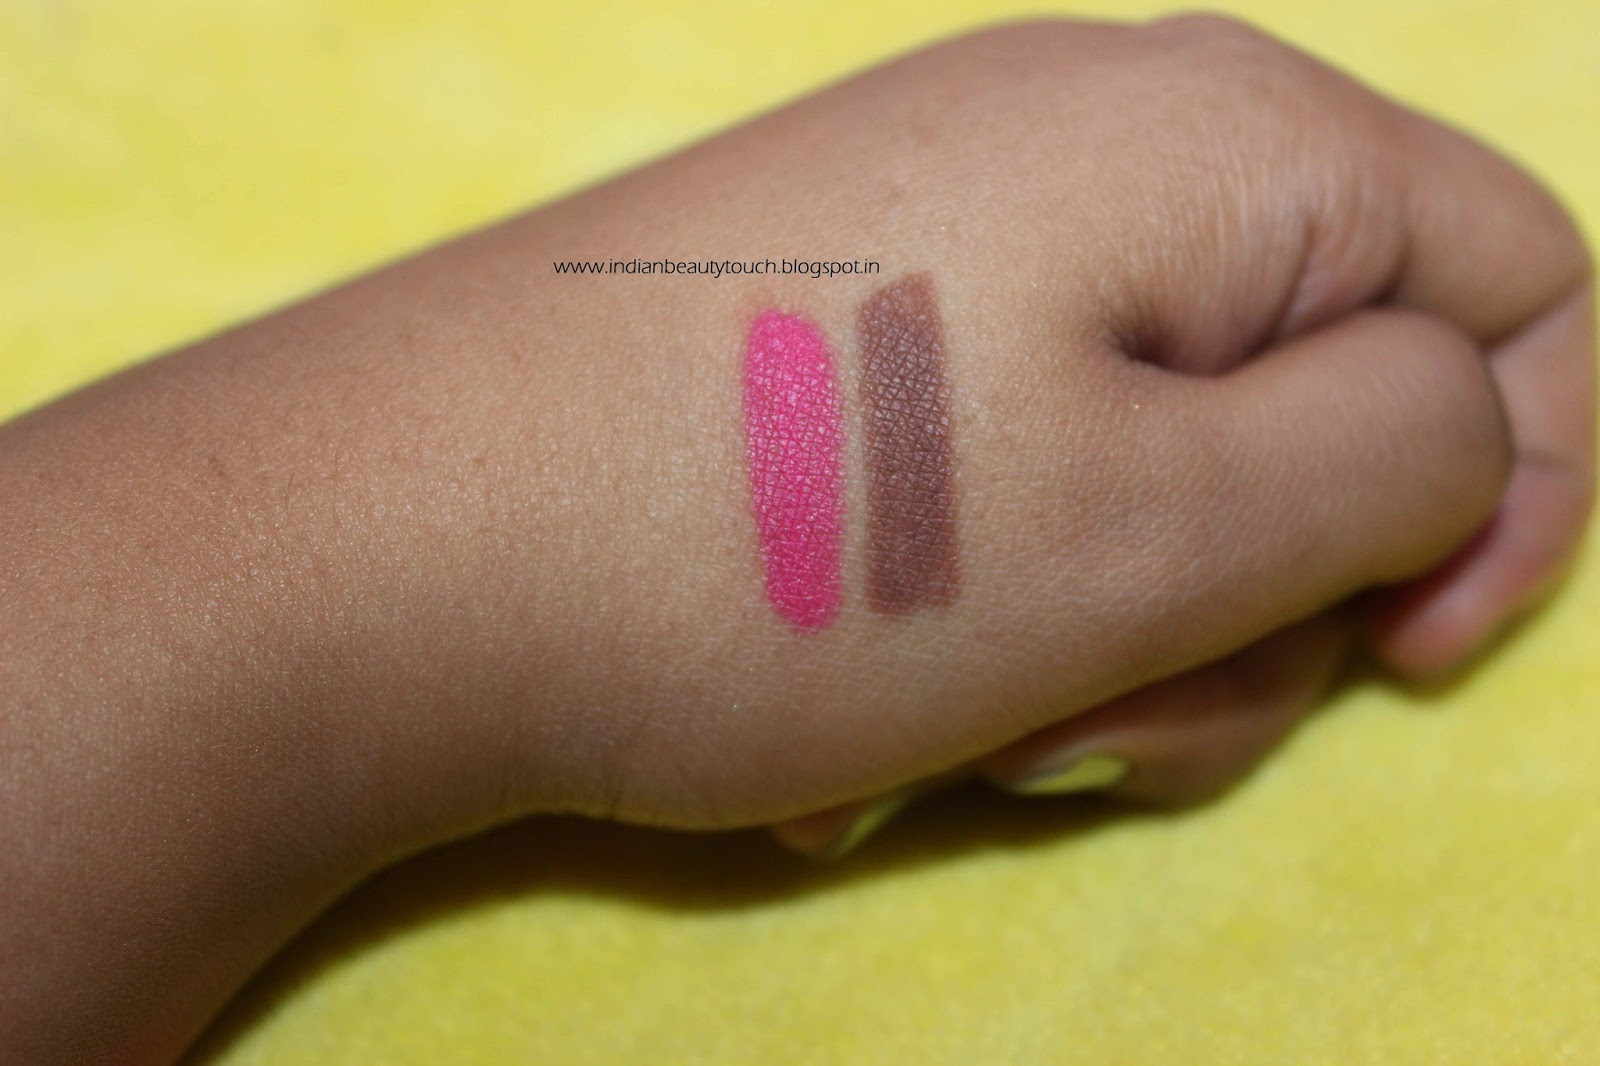 NYX lip liner pencil review in hot pink,  Nyx cosmetics , Nyx lipstick , Nyx lip liner pencil review and swatches , nyx lip liner swatches , nyx lip liner hot pink swatches , Nyx lip liner nude truffle swatches, nyx cosmetics india , makeup products review